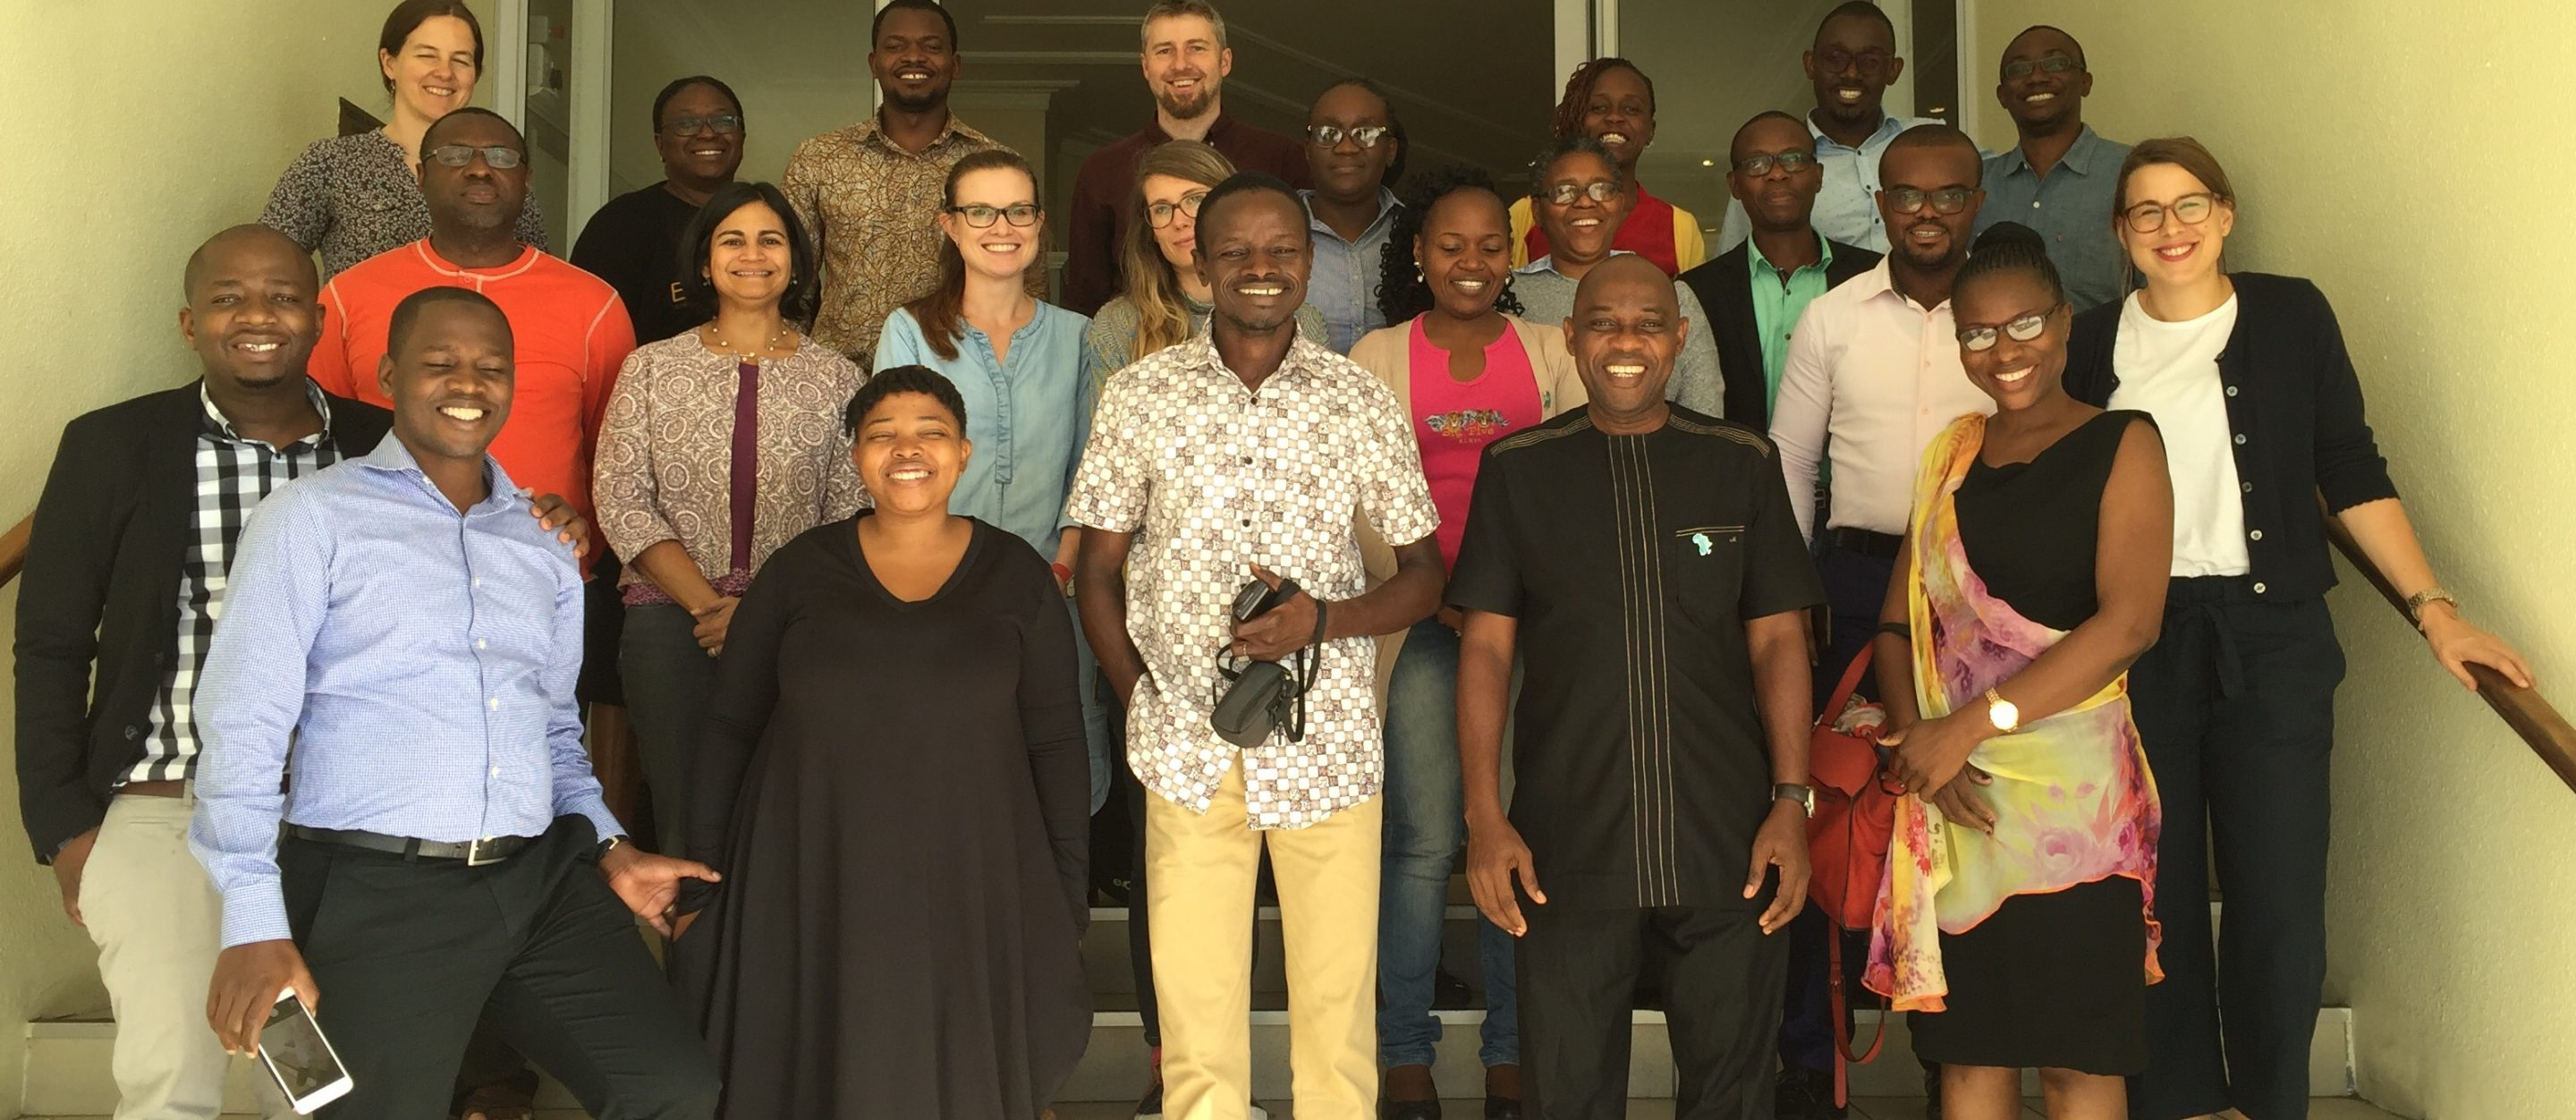 International Council for Science (ICSU) seeks Communications Intern for the LIRA 2030 Programme 2018